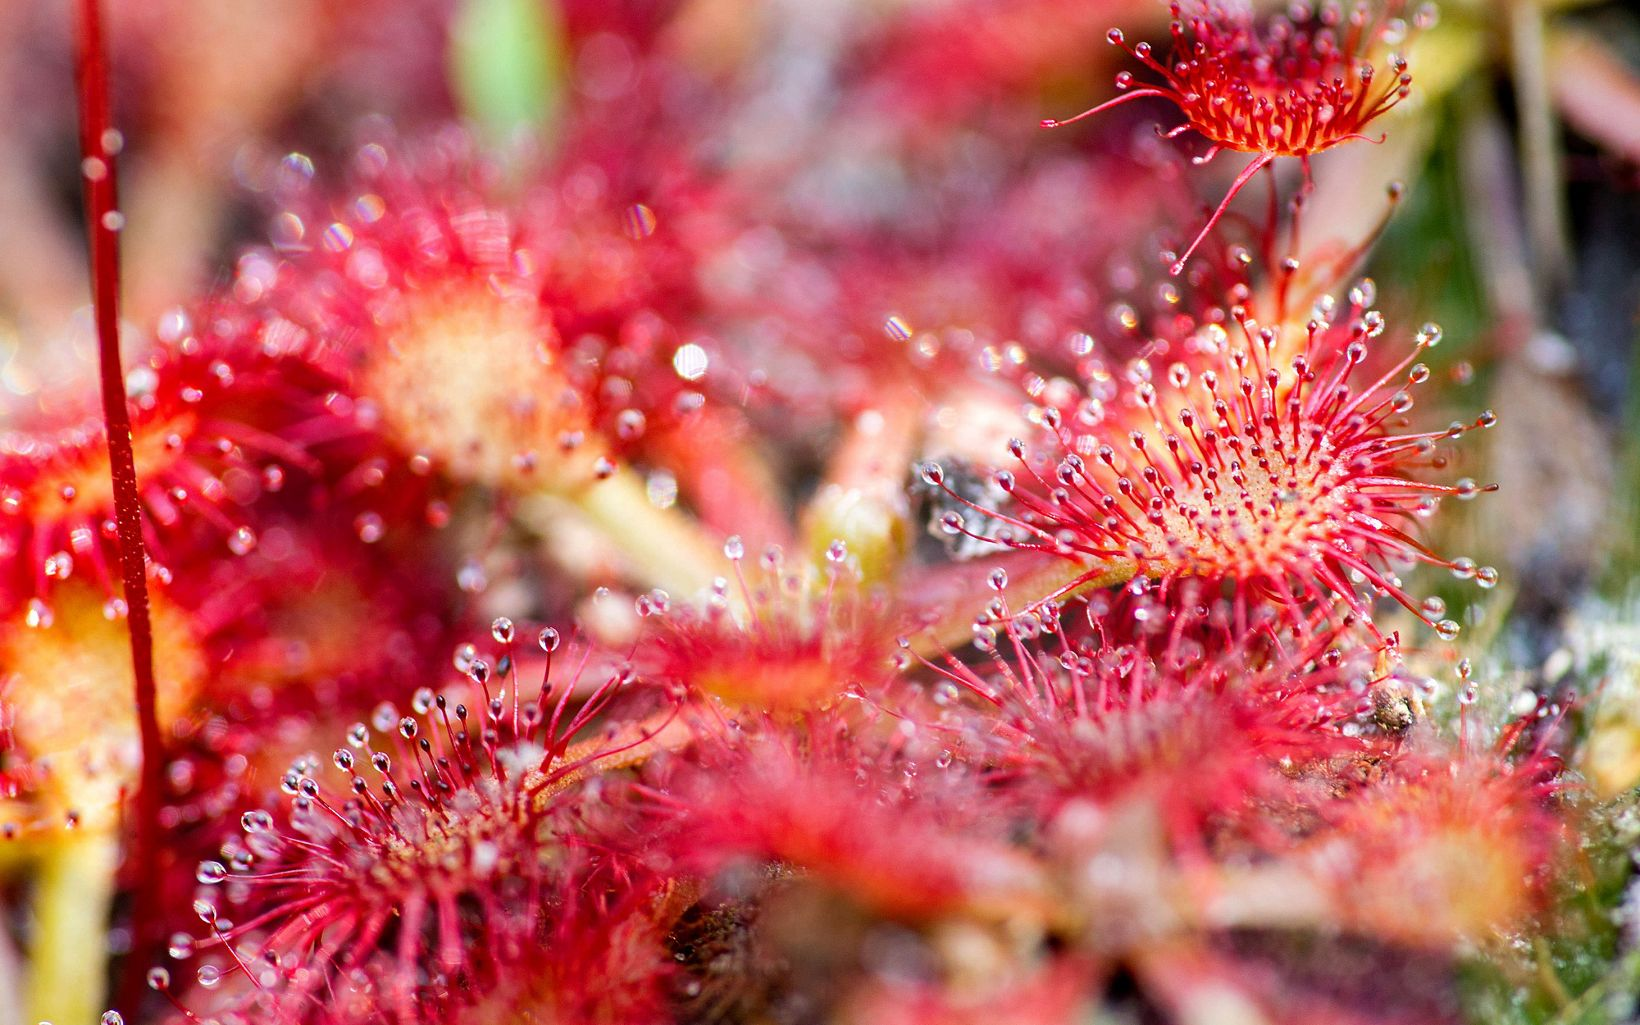 Closeup of sundews with club-shaped light green stems covered in tiny sticky red hairs.